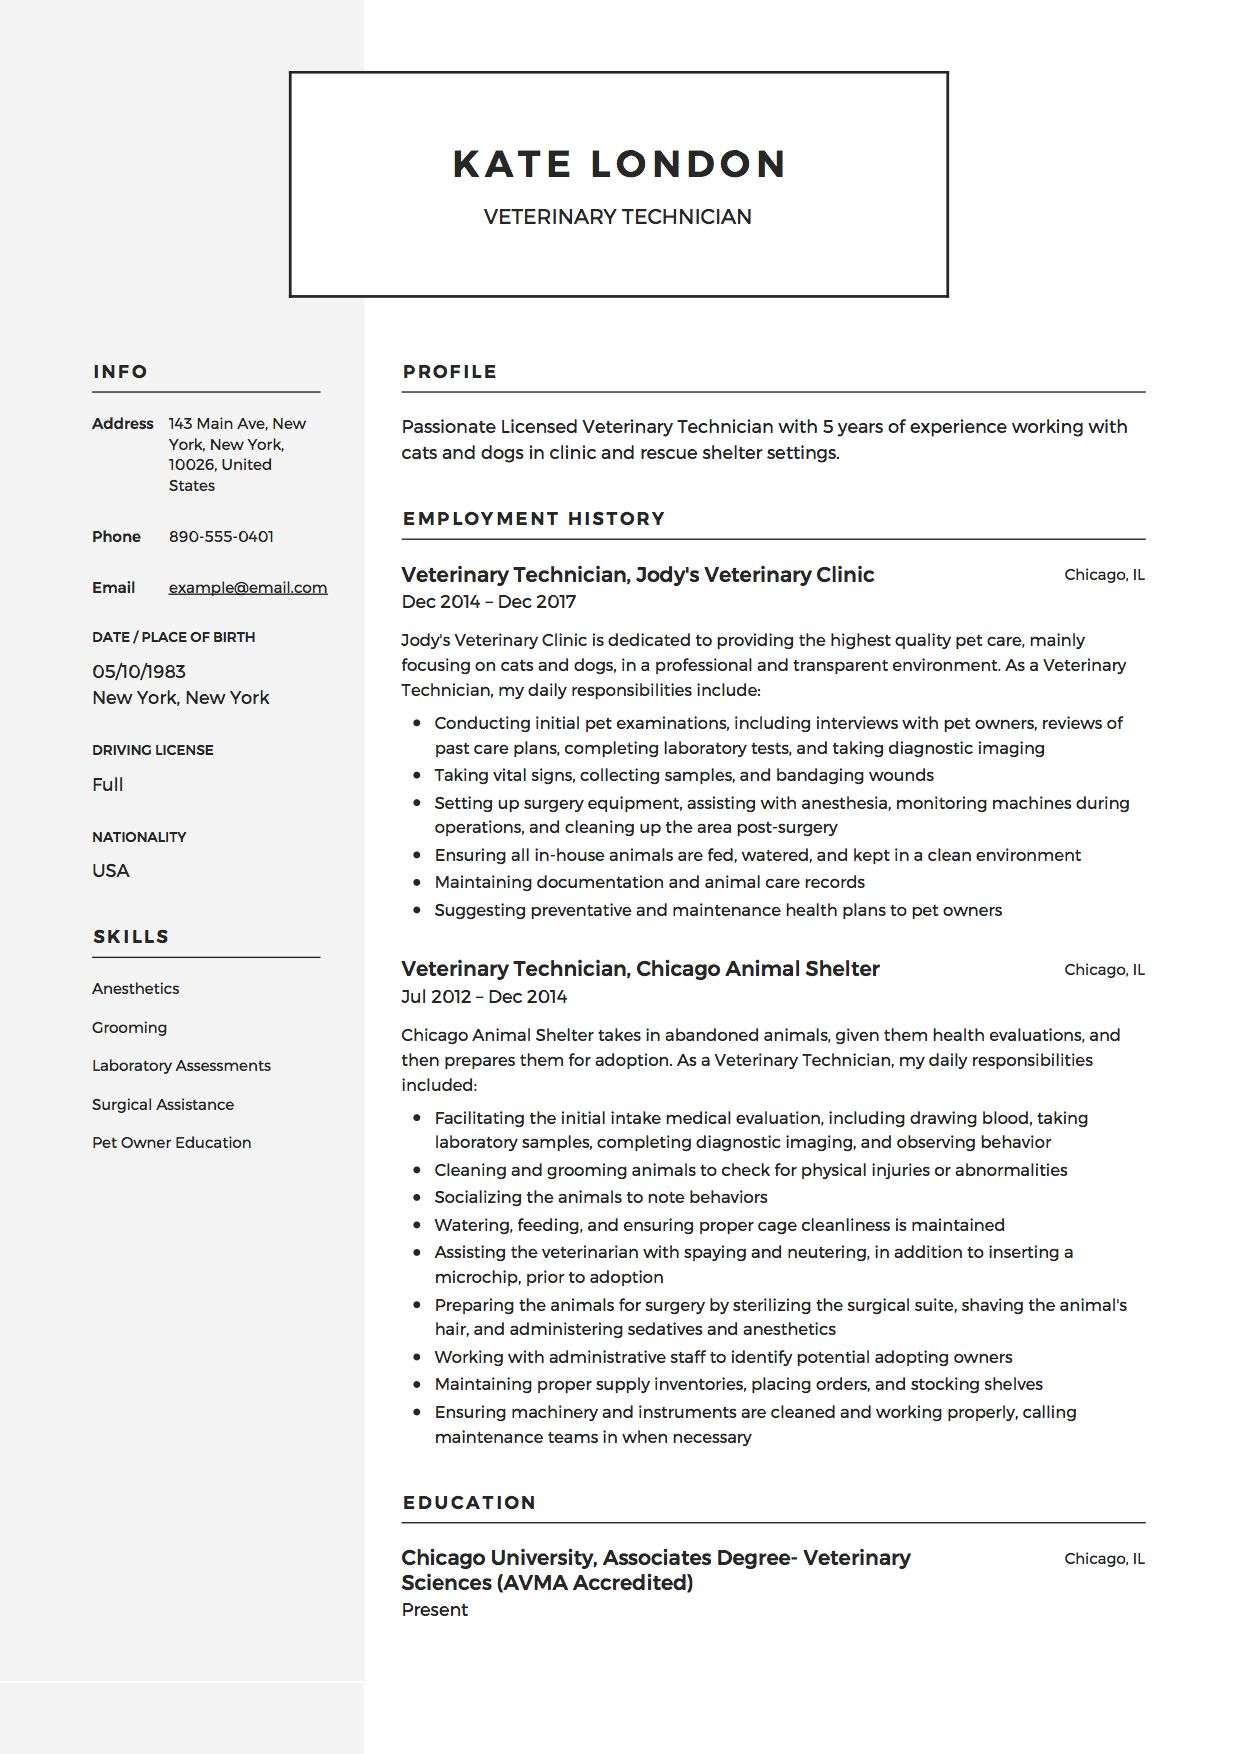 veterinary technician resume example vet tech student medical assistant technical Resume Technical Resume Examples 2020